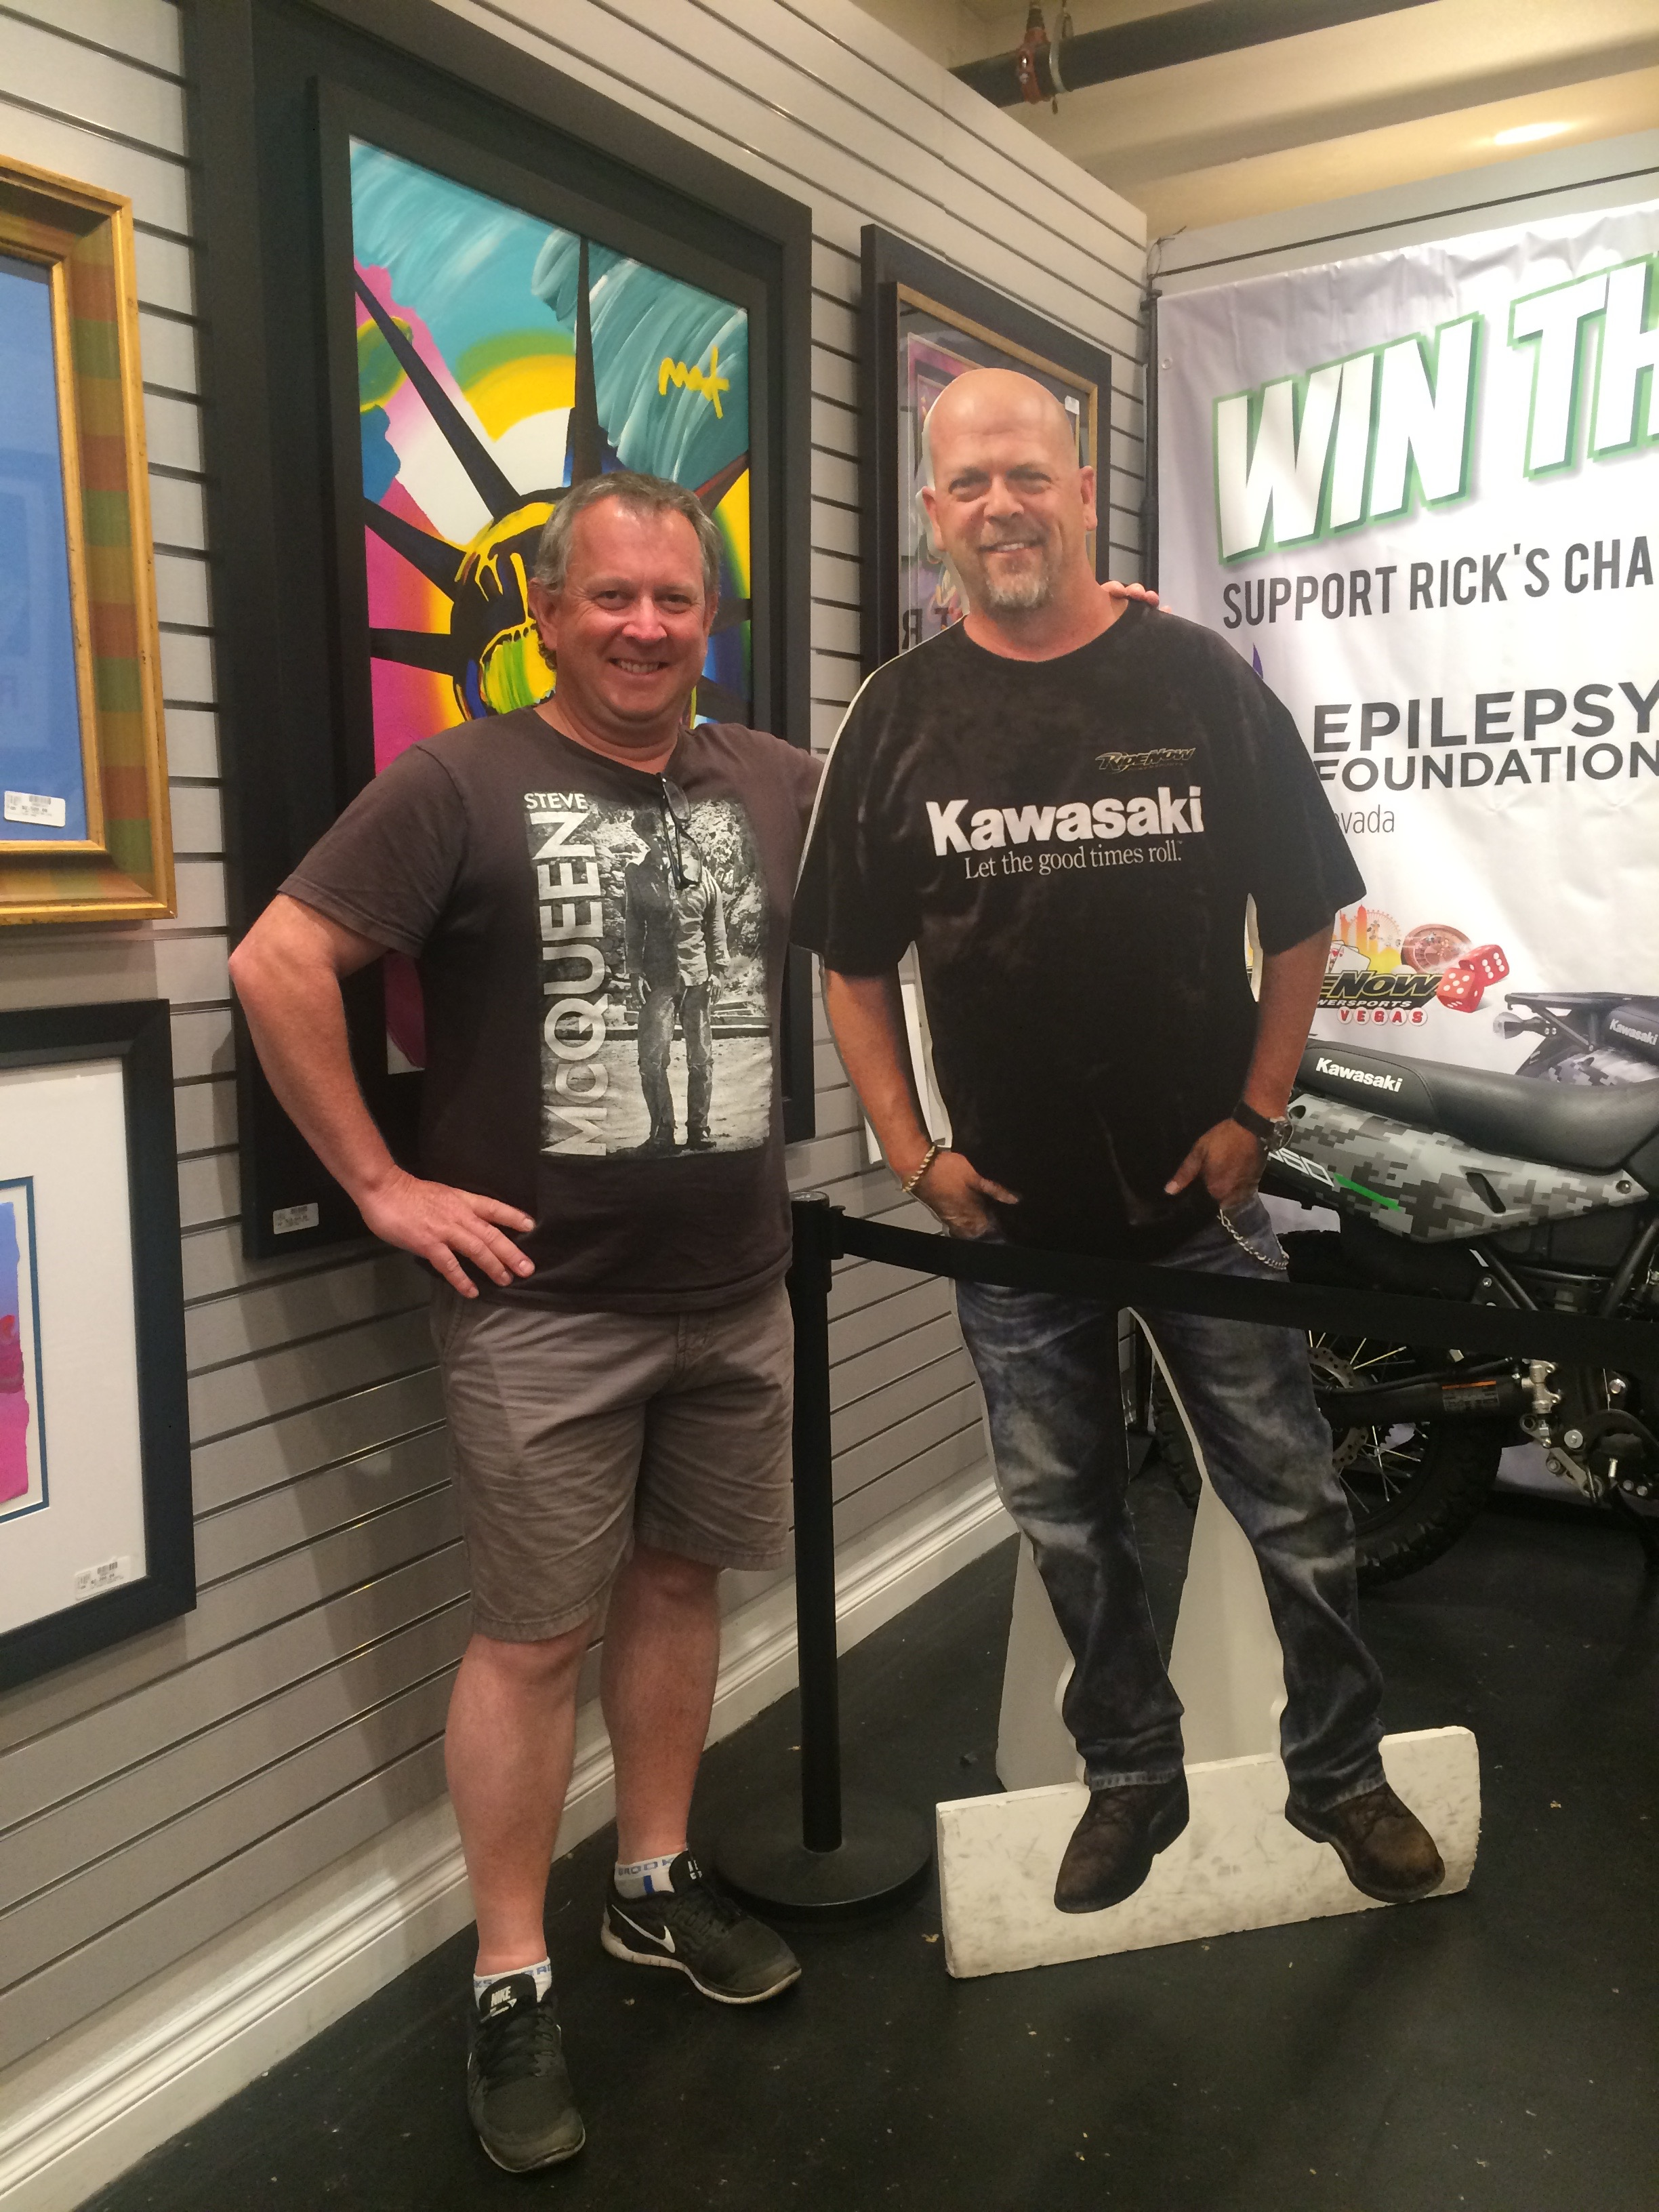 Jeff with a Pawn Star!